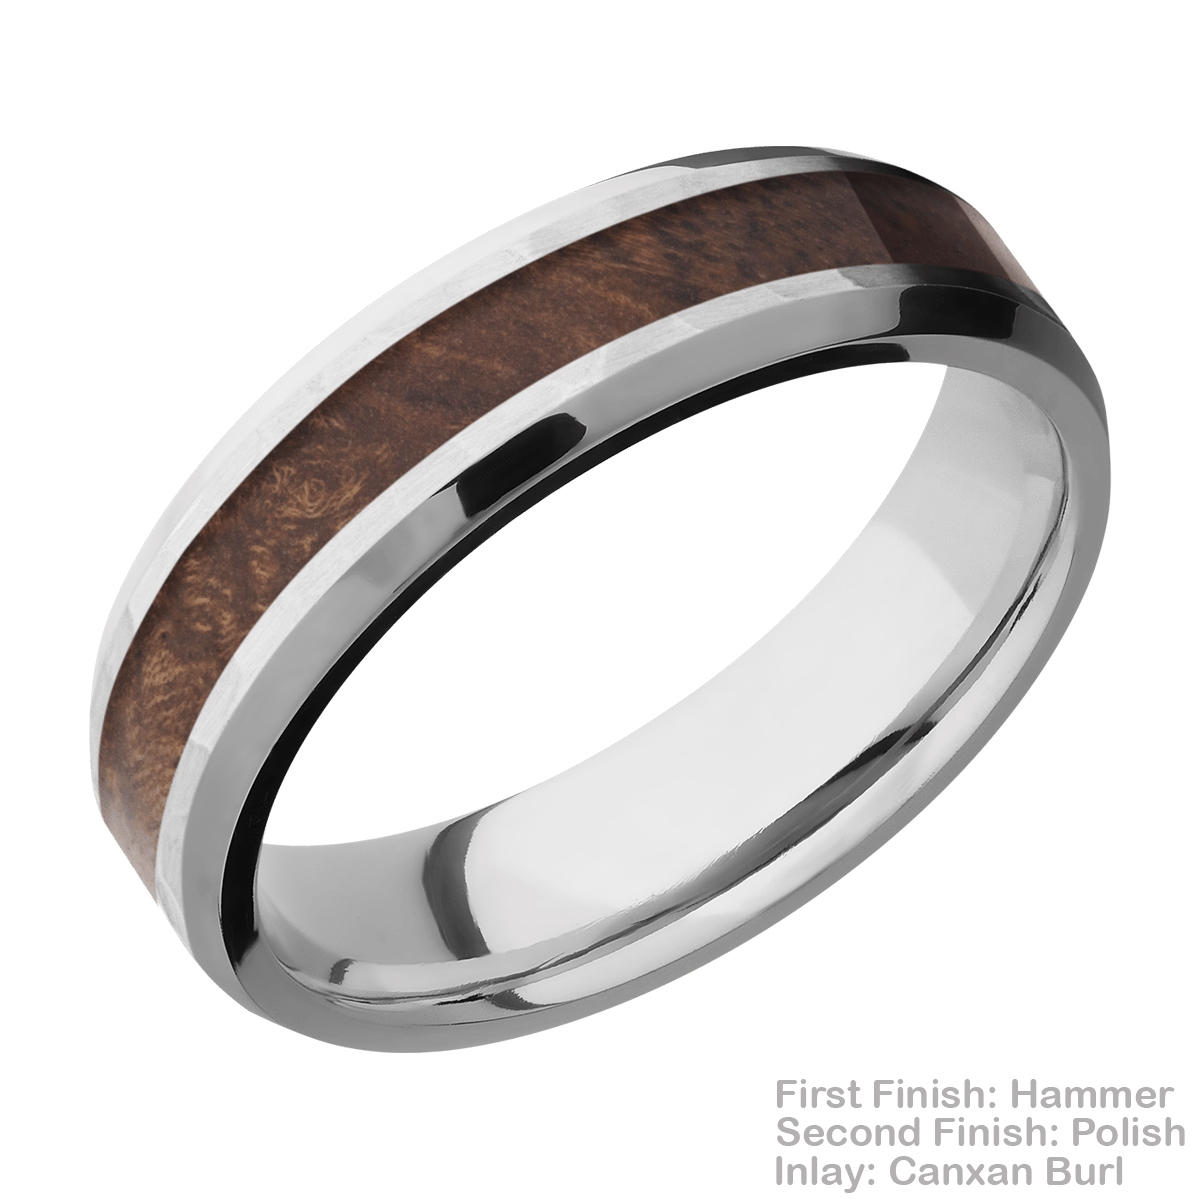 Lashbrook CC6B13(NS)/HARDWOOD Cobalt Chrome Wedding Ring or Band Alternative View 7